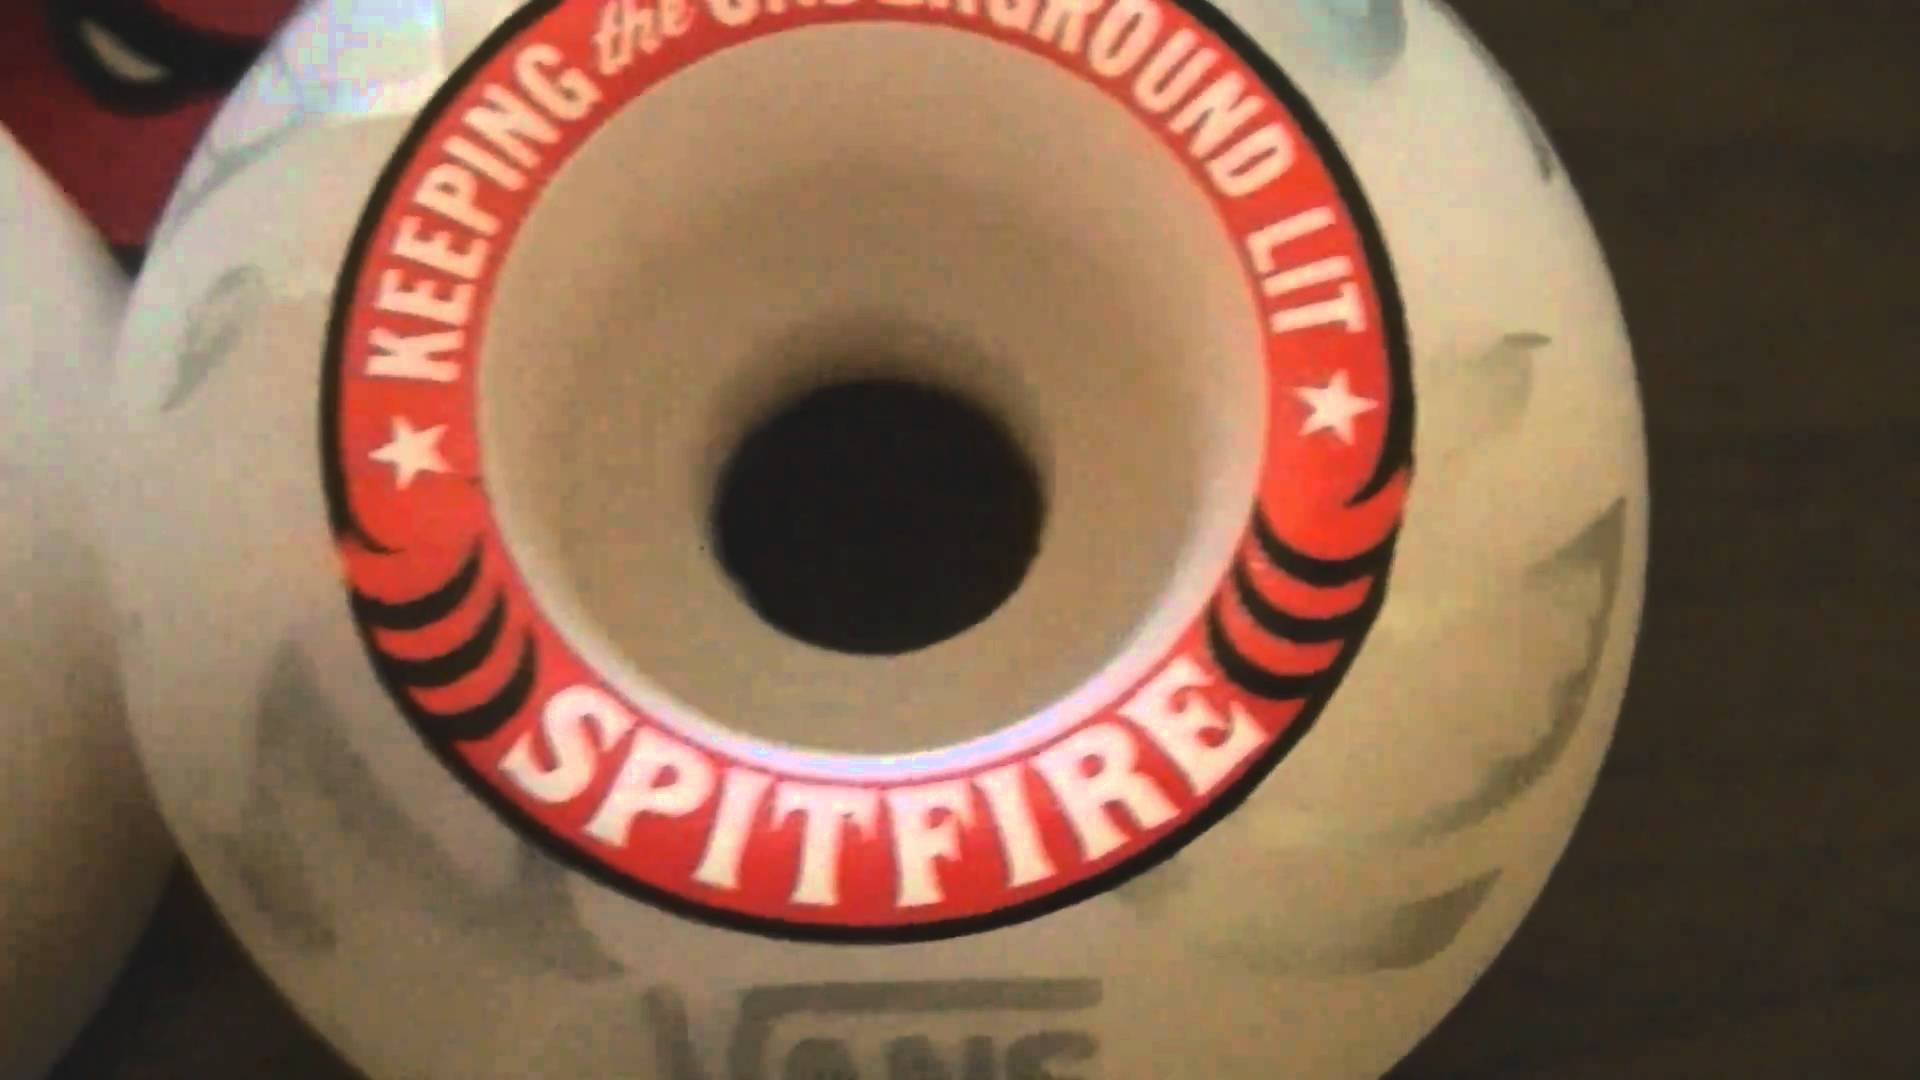 1920x1080 Vans Spitfire Collaboration Wheels Unboxing 52mm in HD